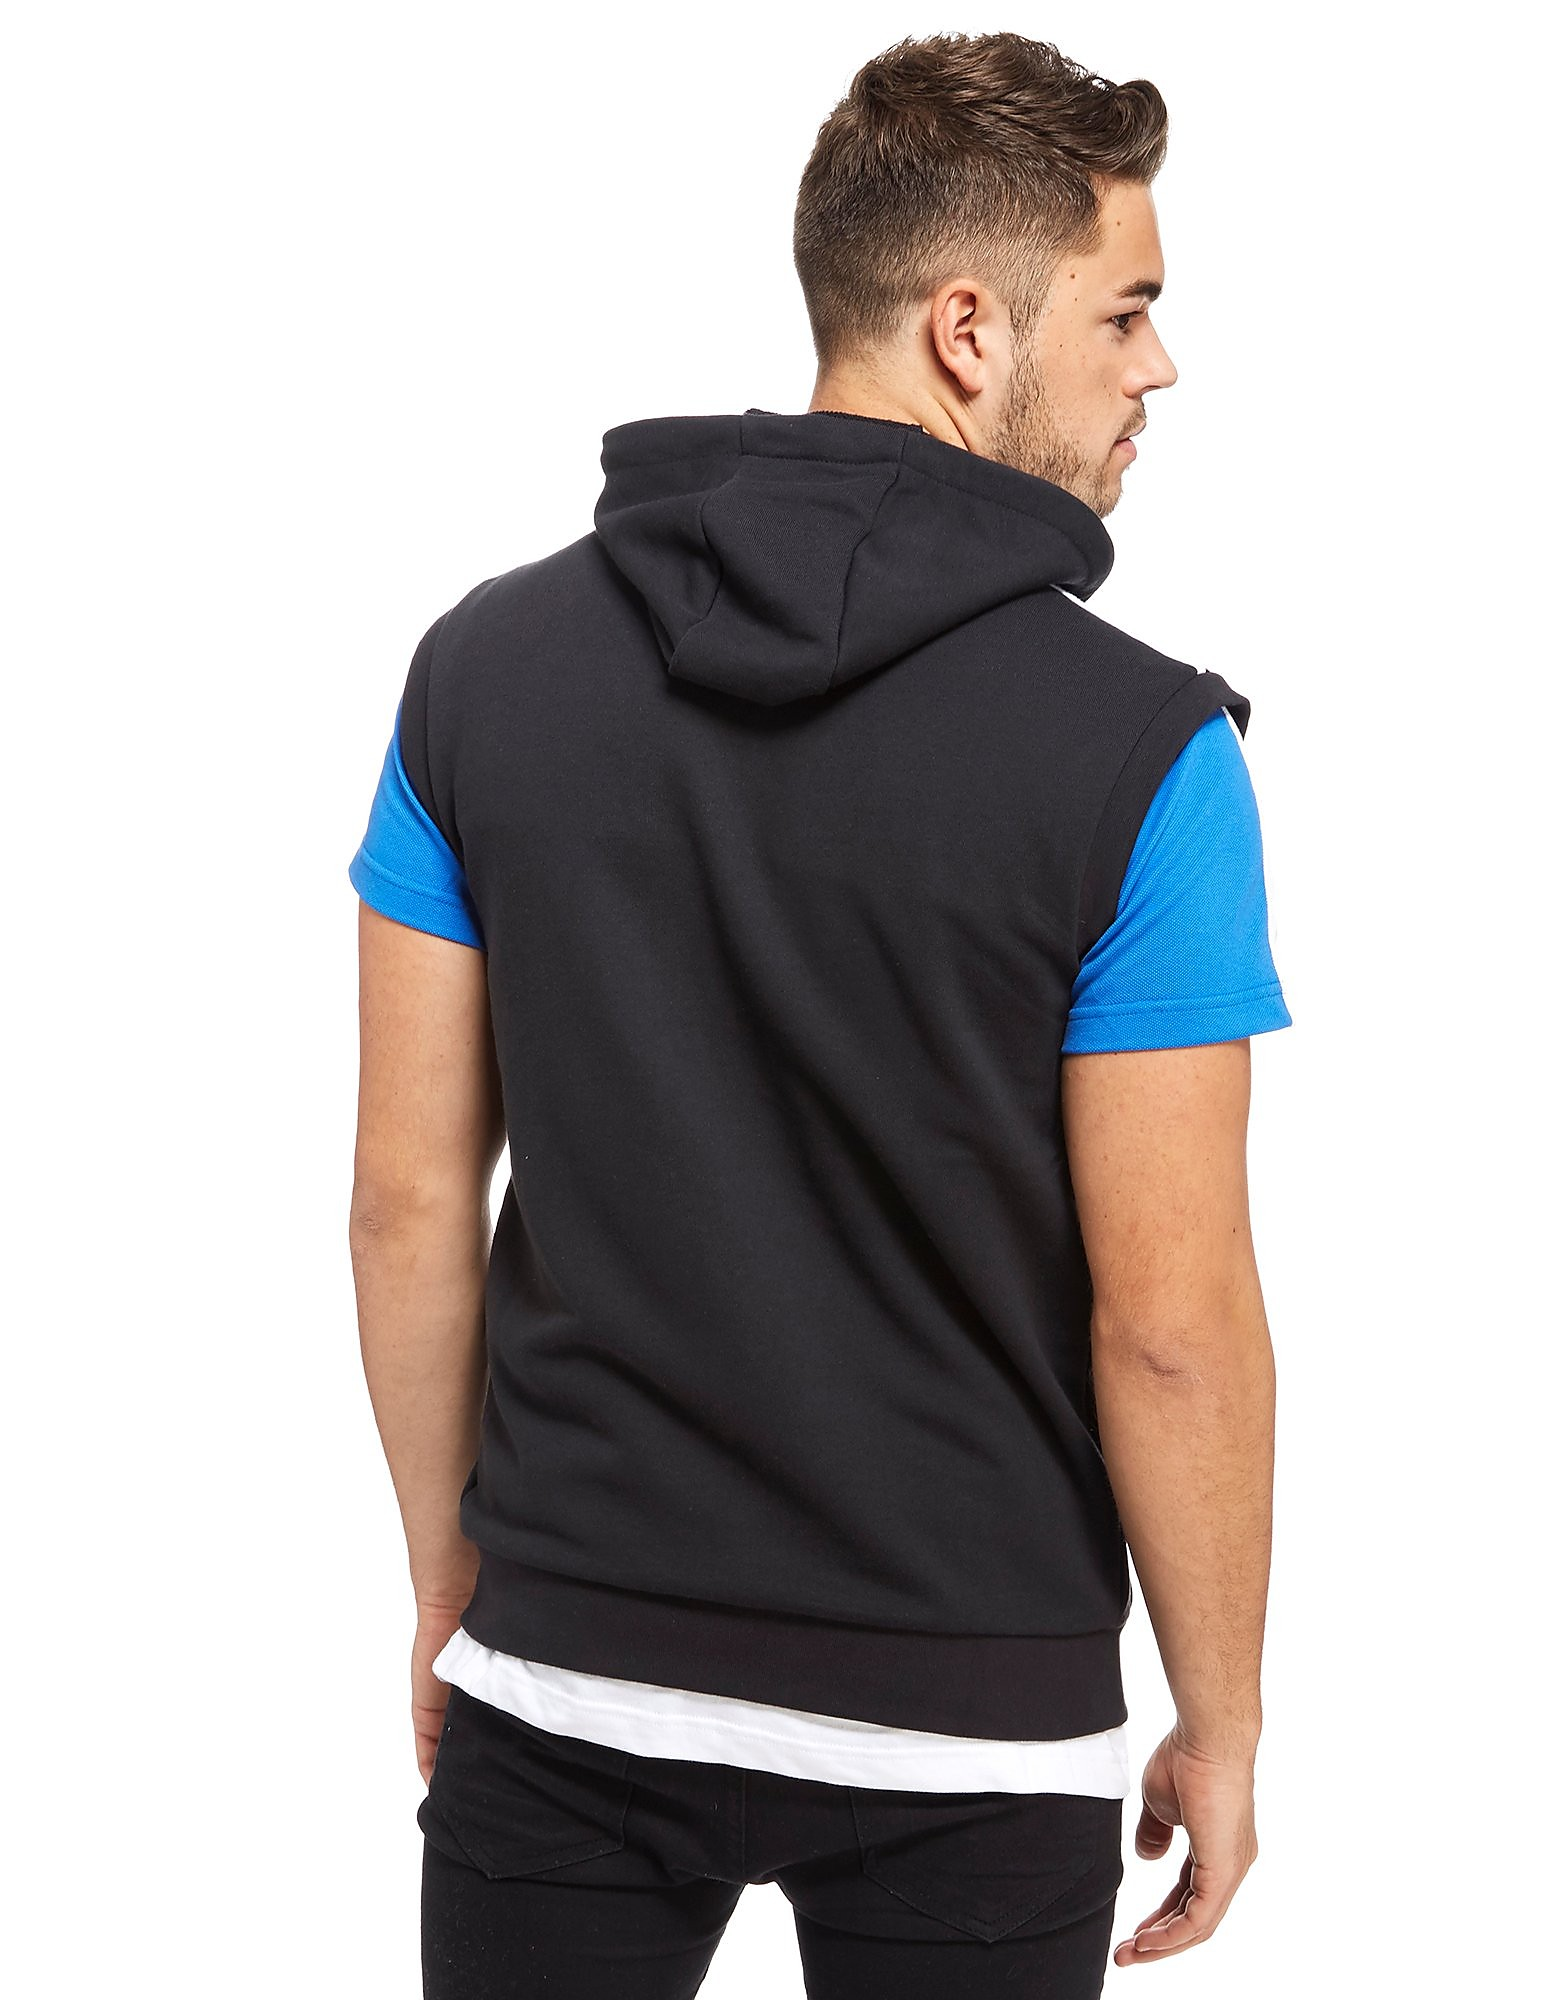 adidas Originals California Sleeveless Hoody